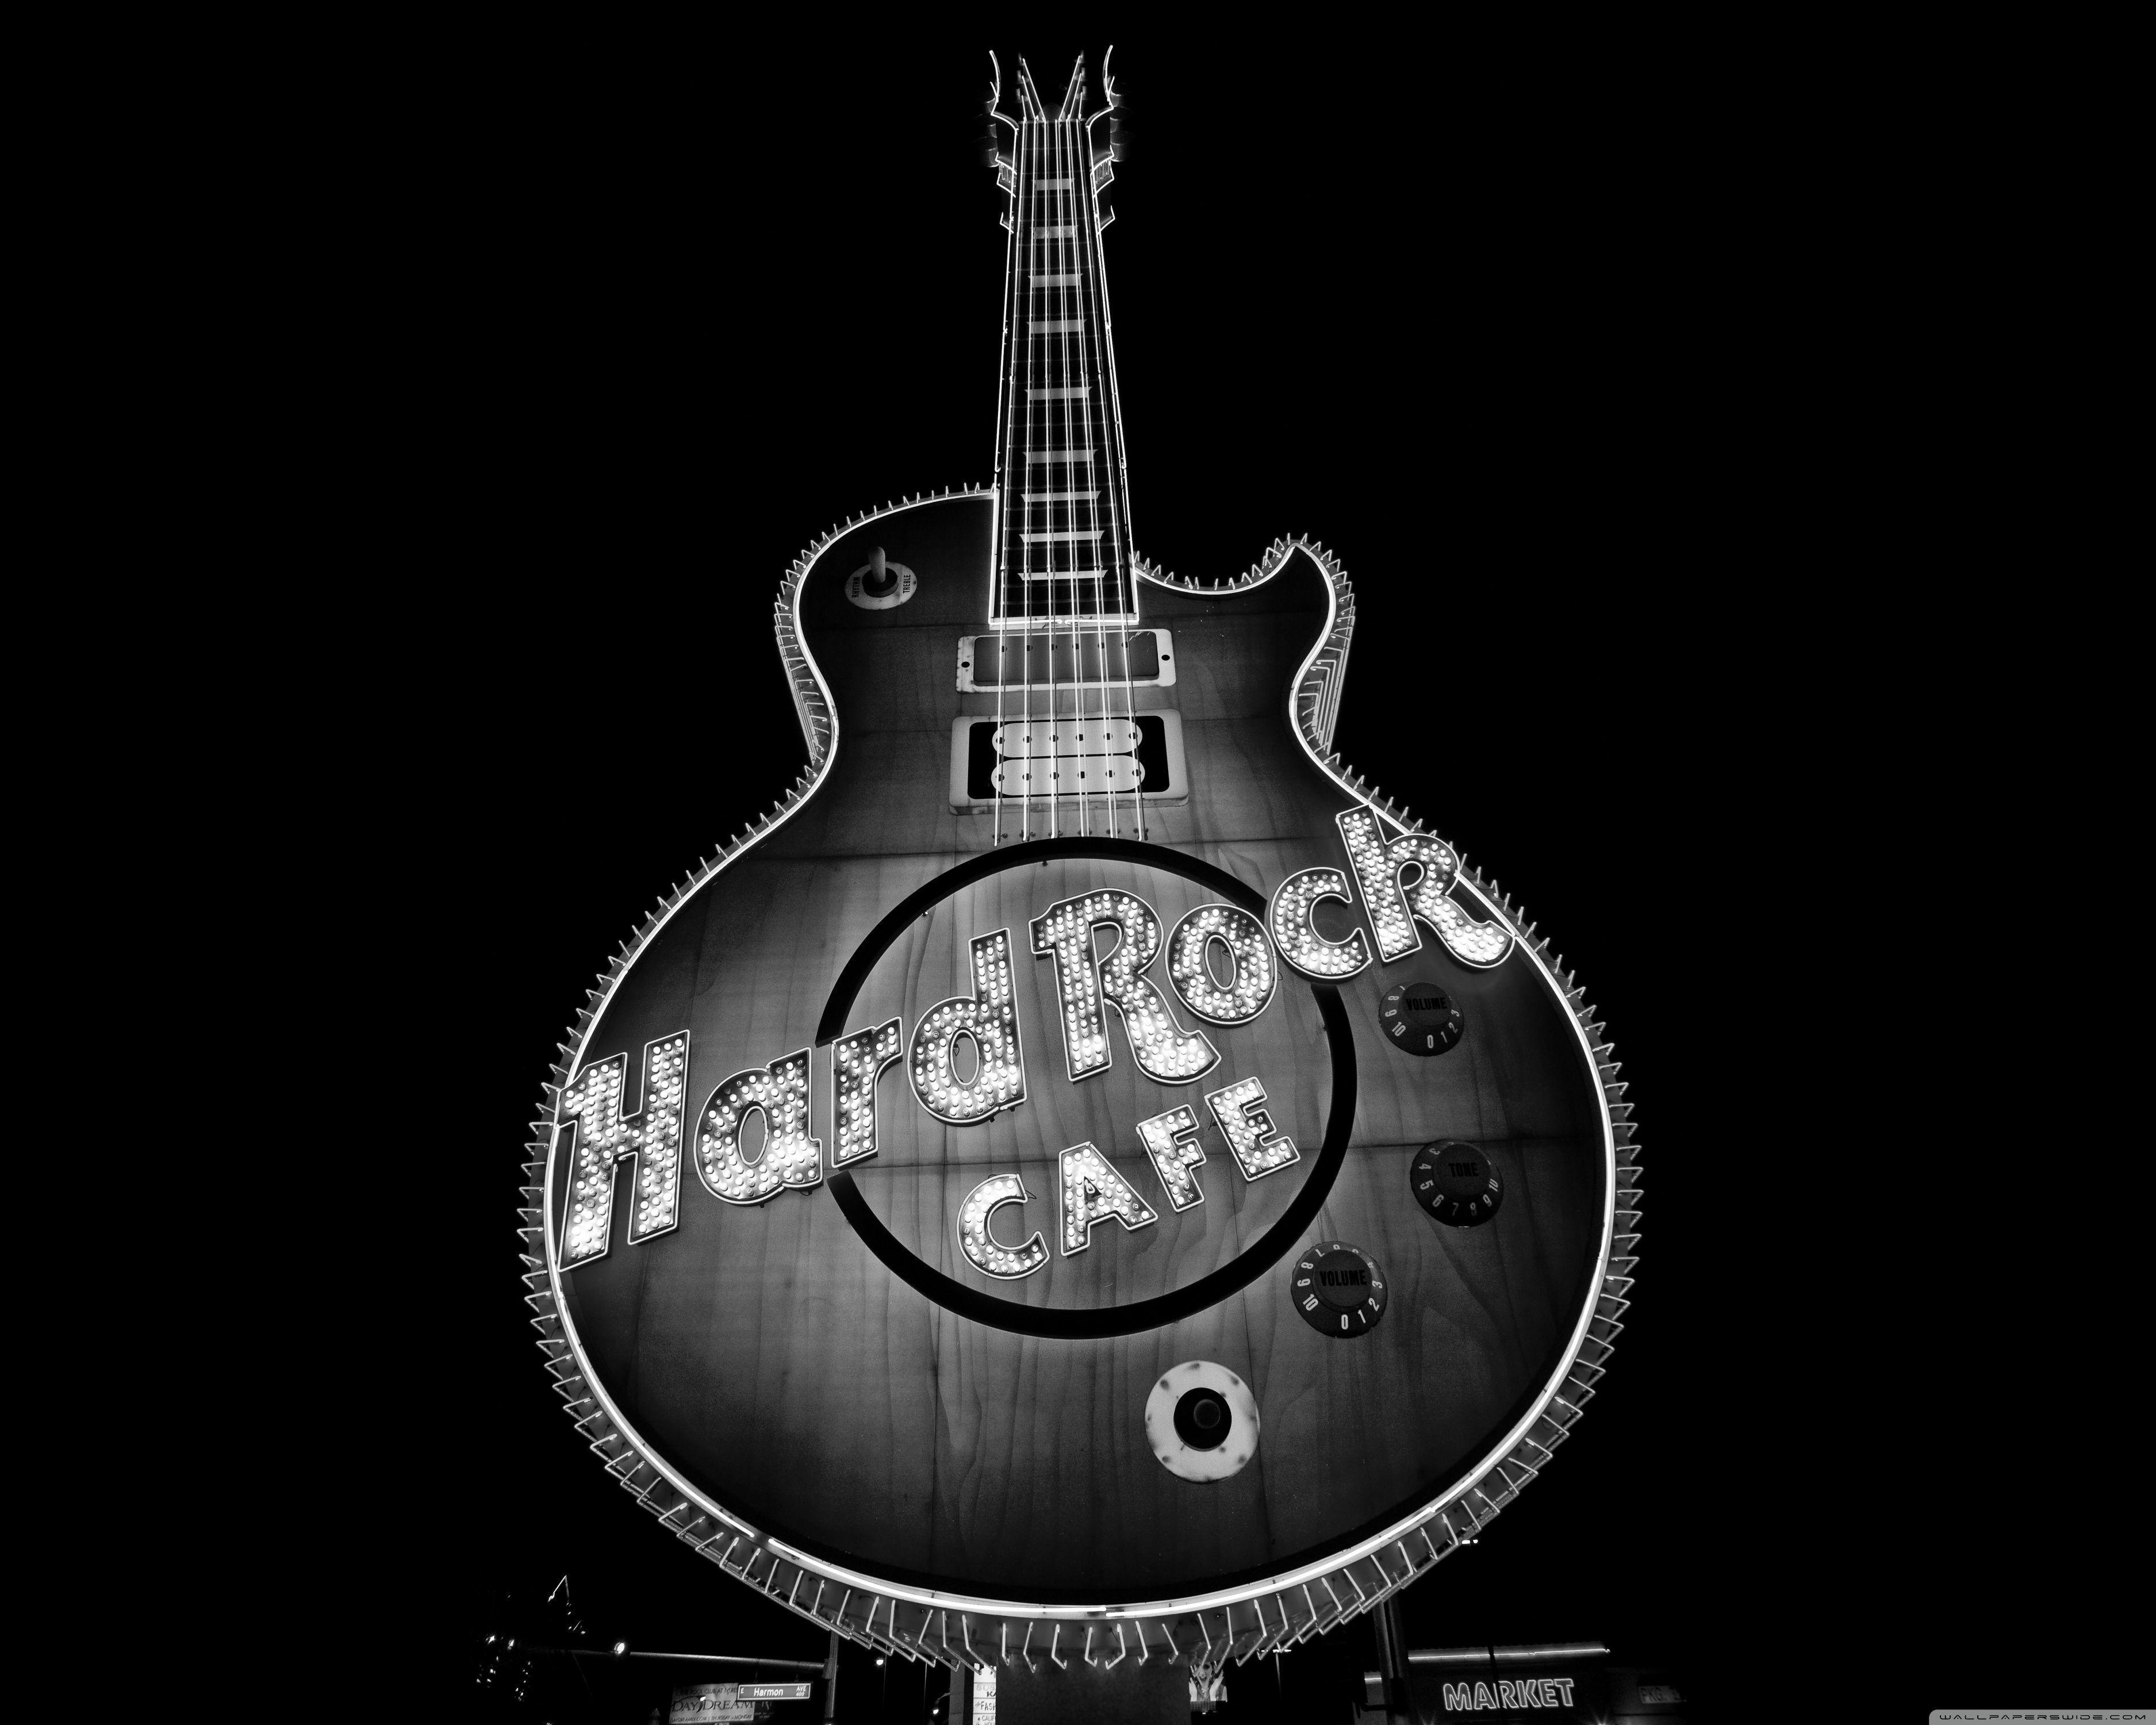 Hard Rock Cafe, Las Vegas HD desktop wallpapers : Widescreen : High